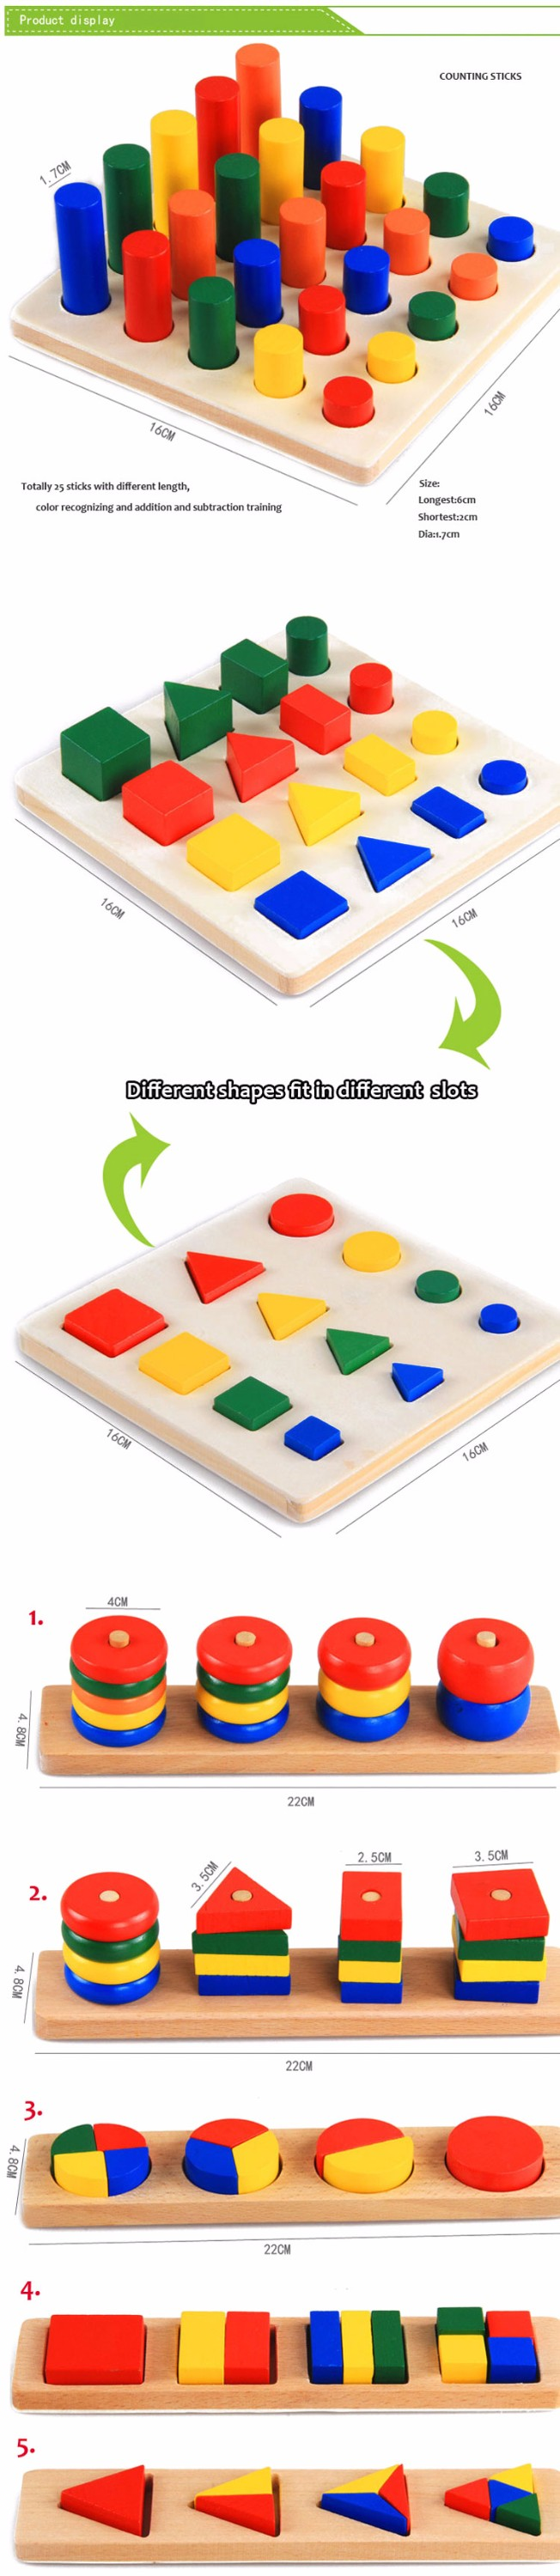 Montessori Aids Early Learning Toys Wooden Educational Kids Toy